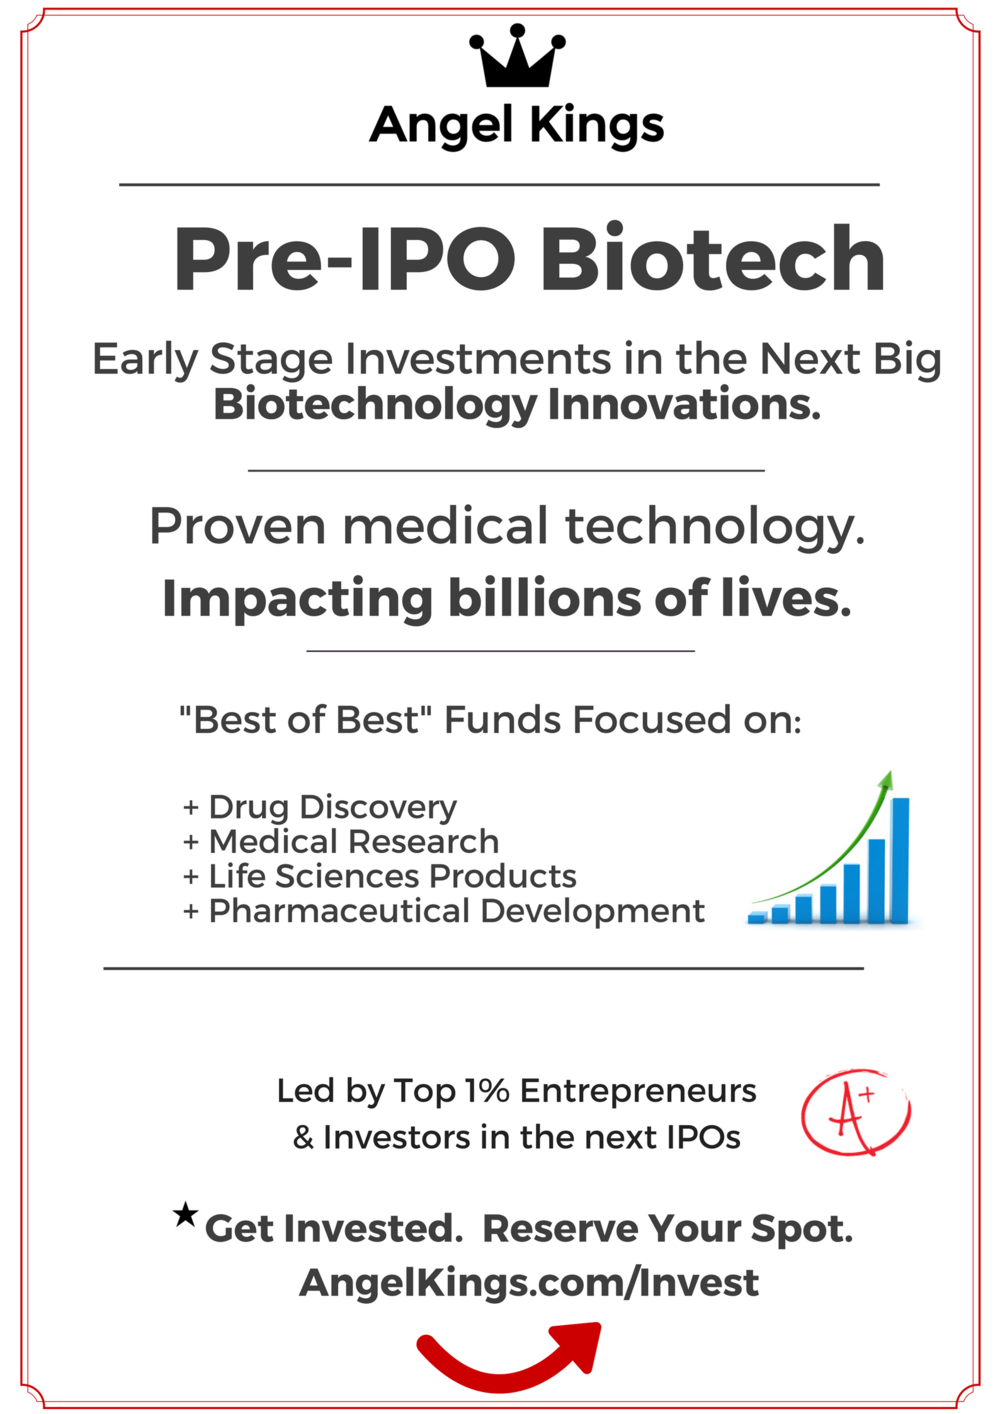 Invest in Biotech Startups with Angel Kings.